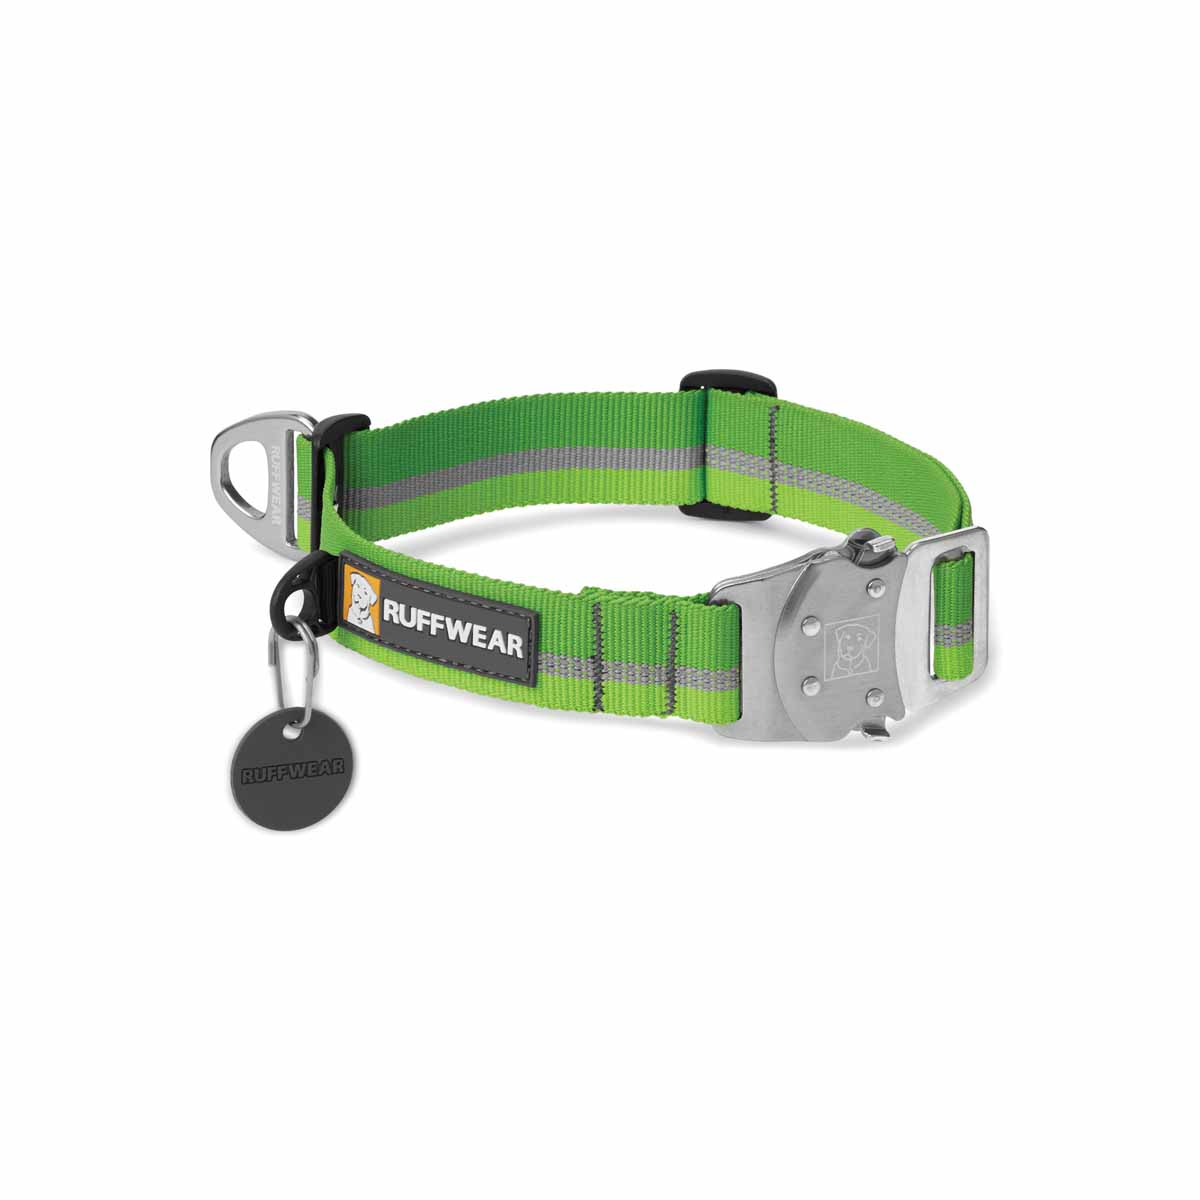 Top Rope Dog Collar by RuffWear - Meadow Green